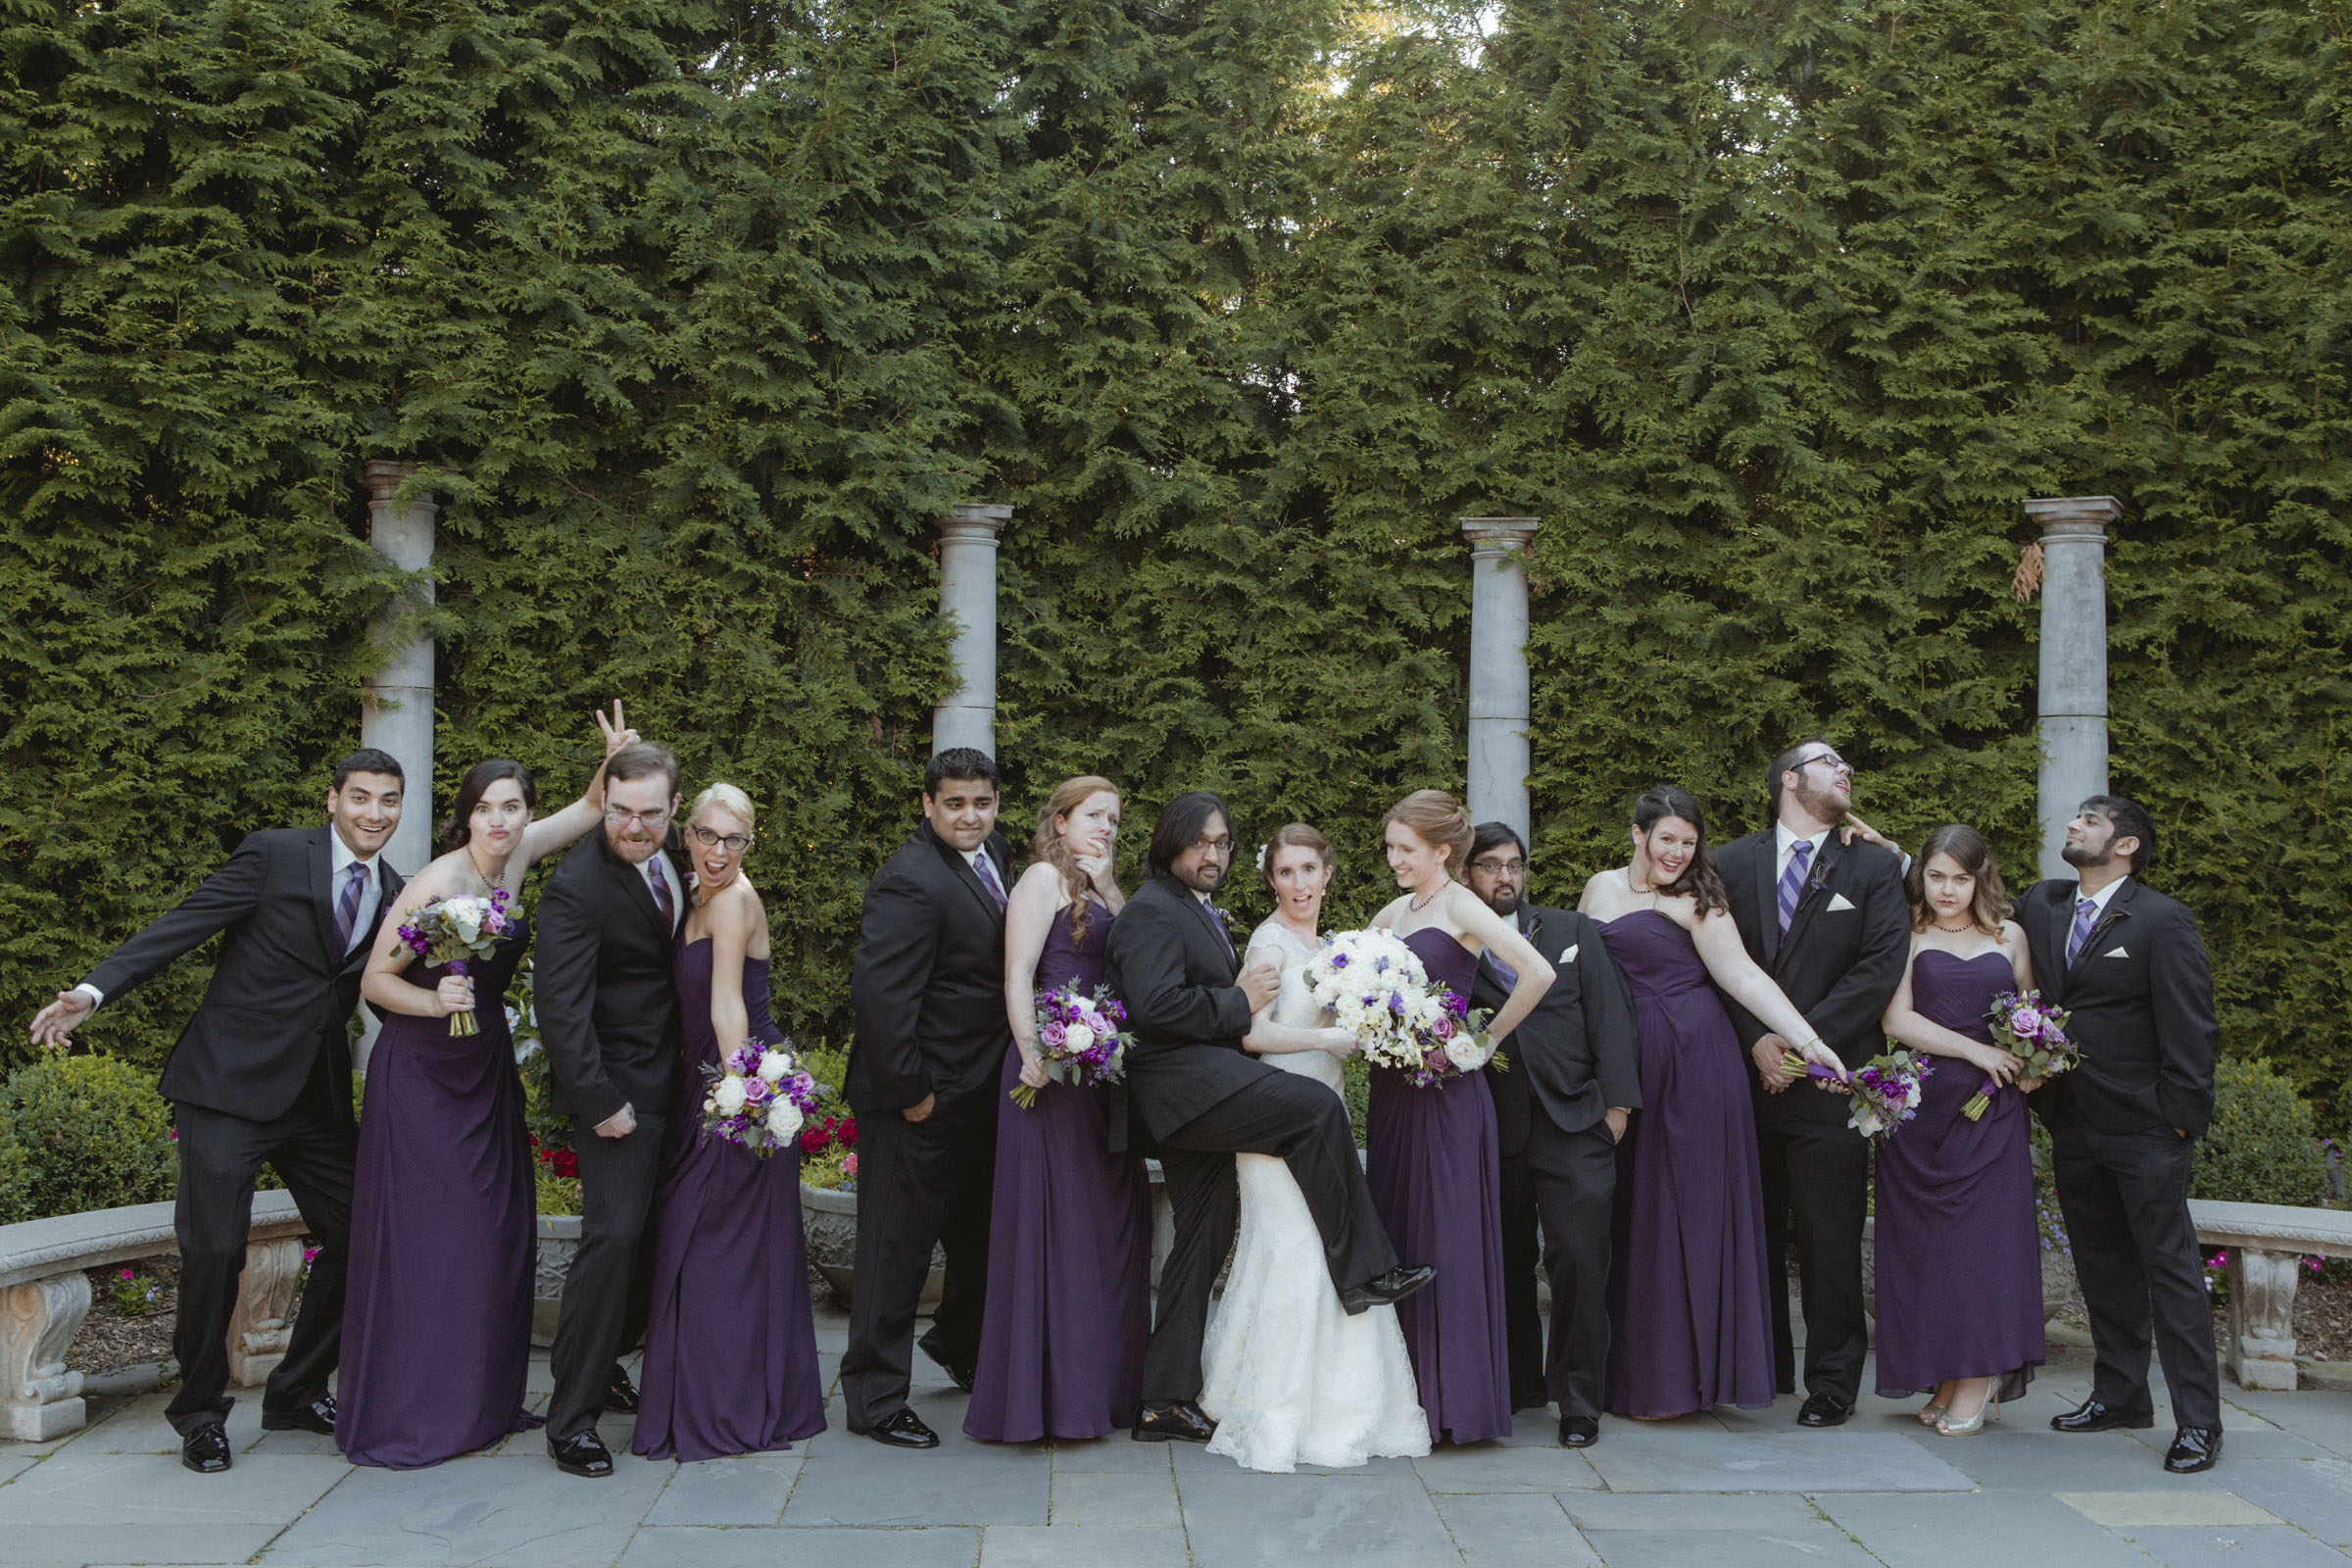 Silly wedding party wears black suits and purple Bill Levkoff gowns - Estate at Florentine Gardens wedding - Hudson Valley Wedding - Kelsey & Anish's wedding - Amy Sims Photography